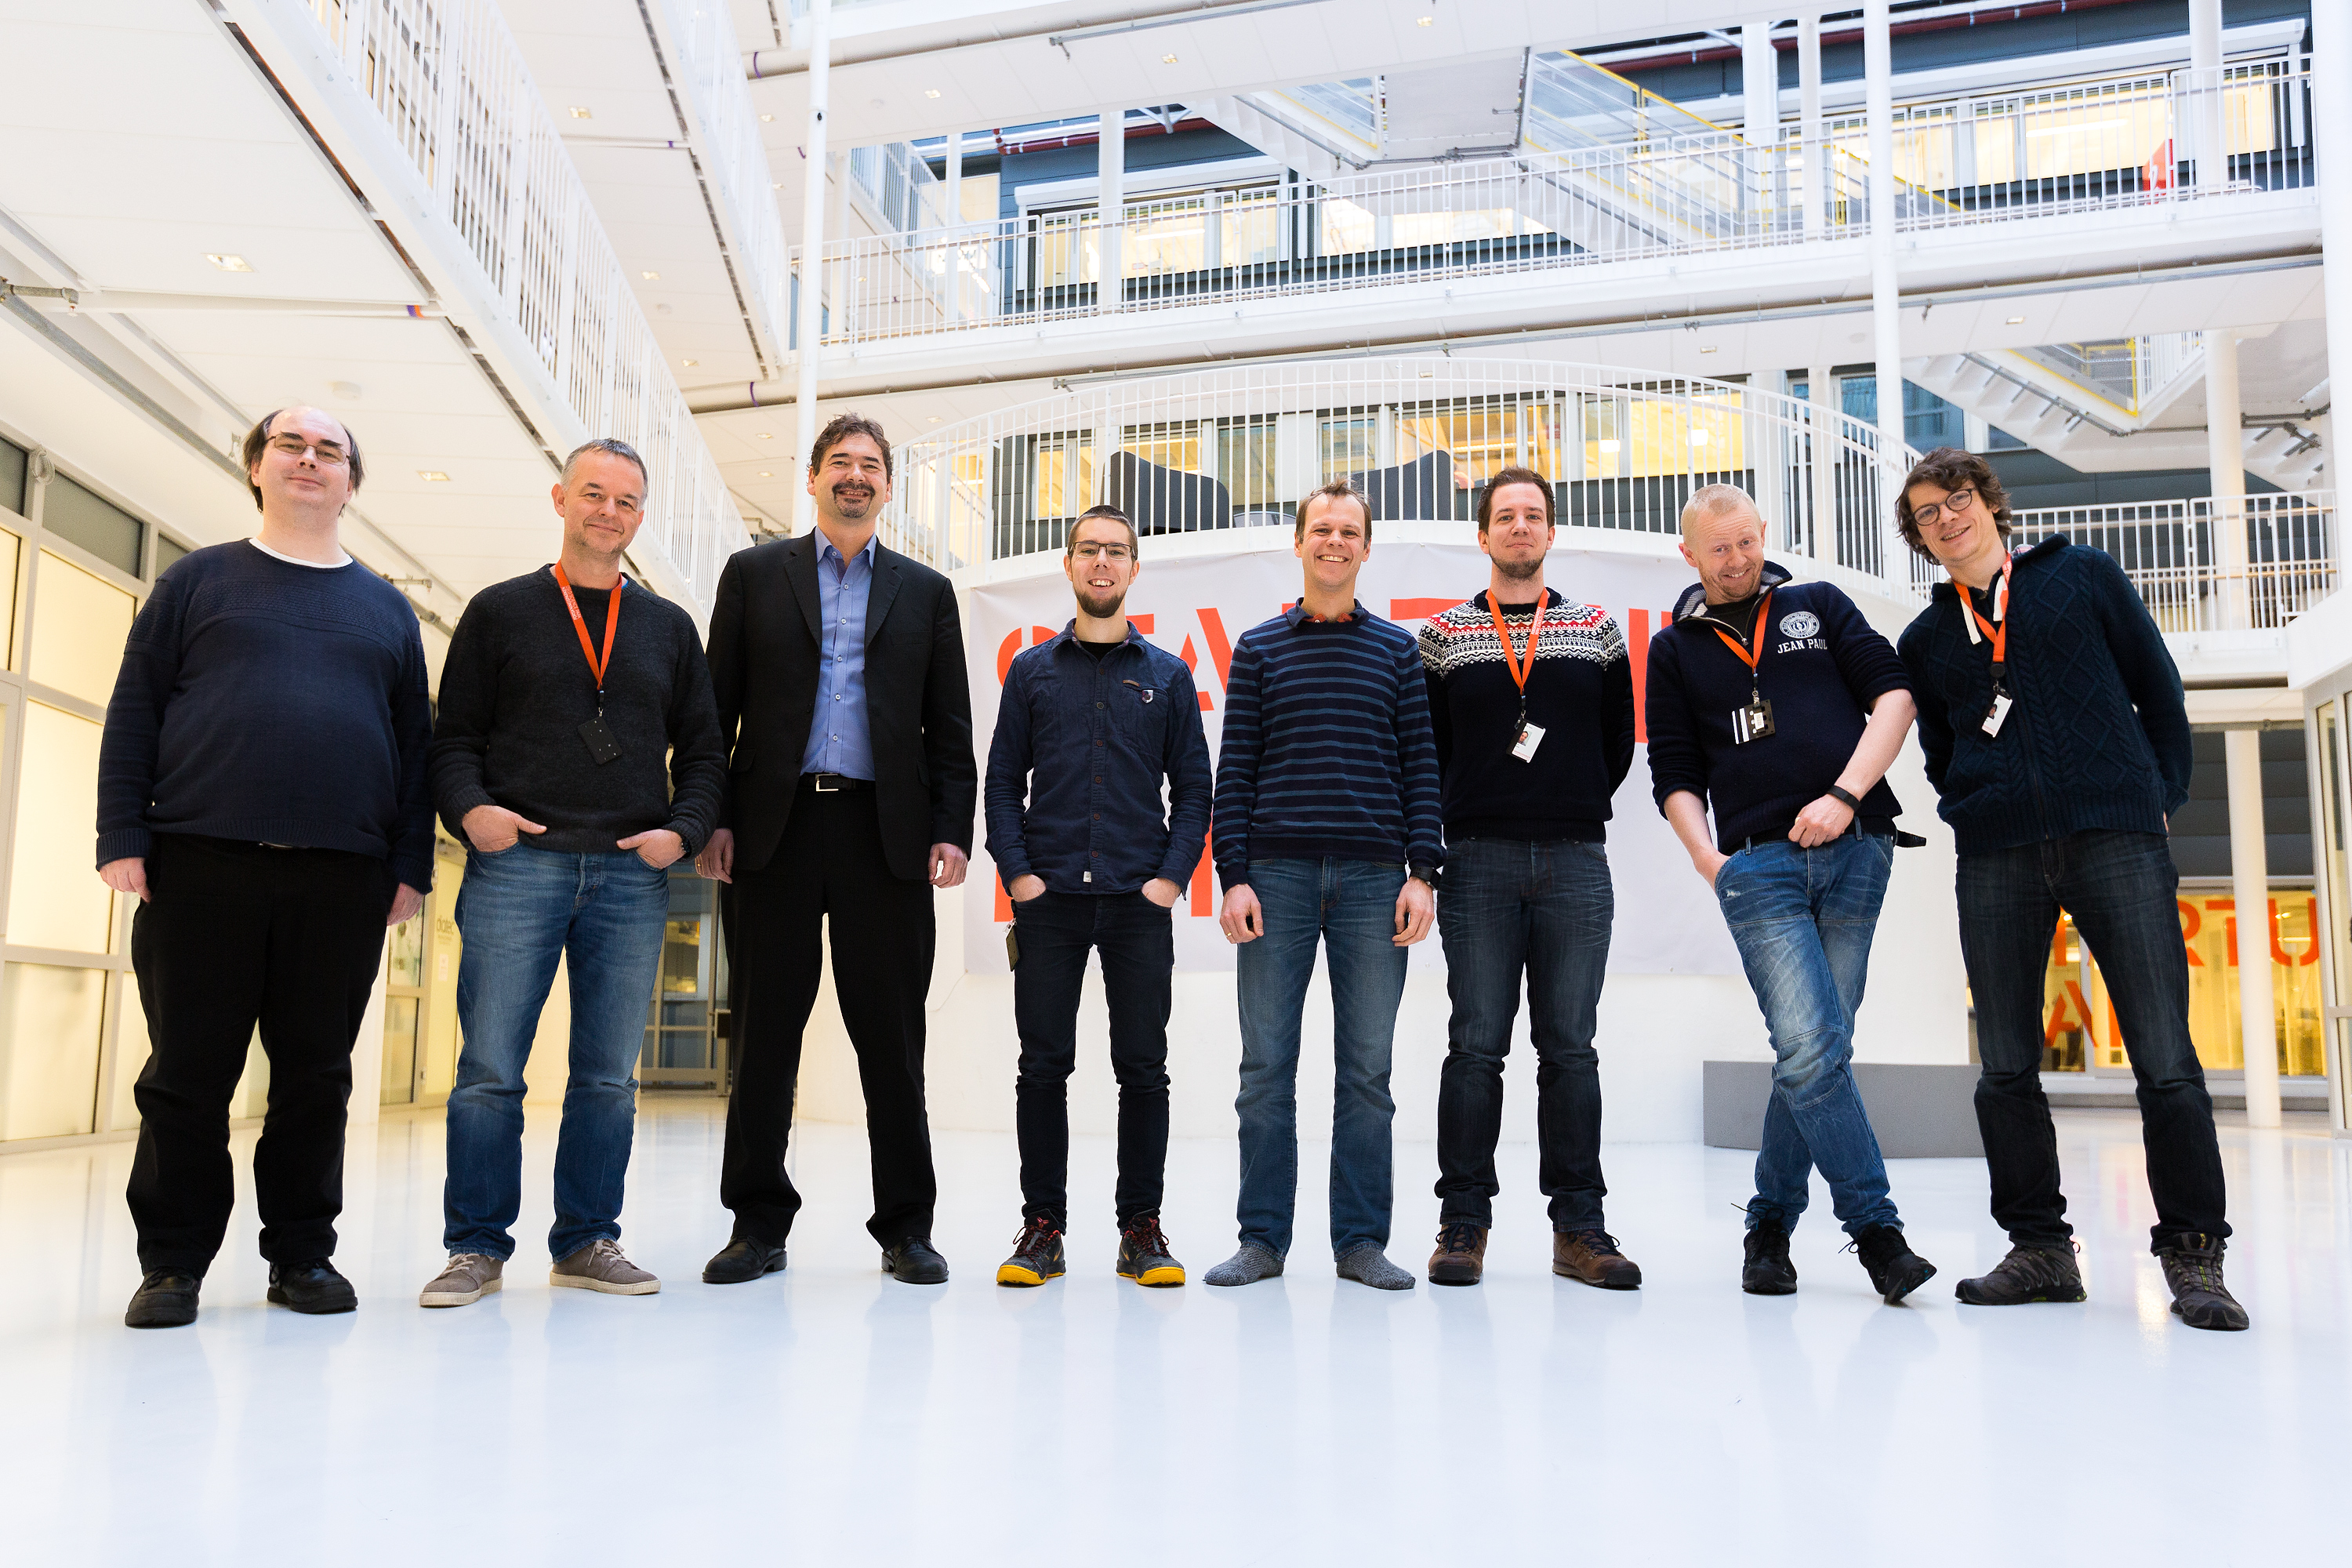 Vivaldi's Oslo-based team (with Jon von Tetzchner third from left)